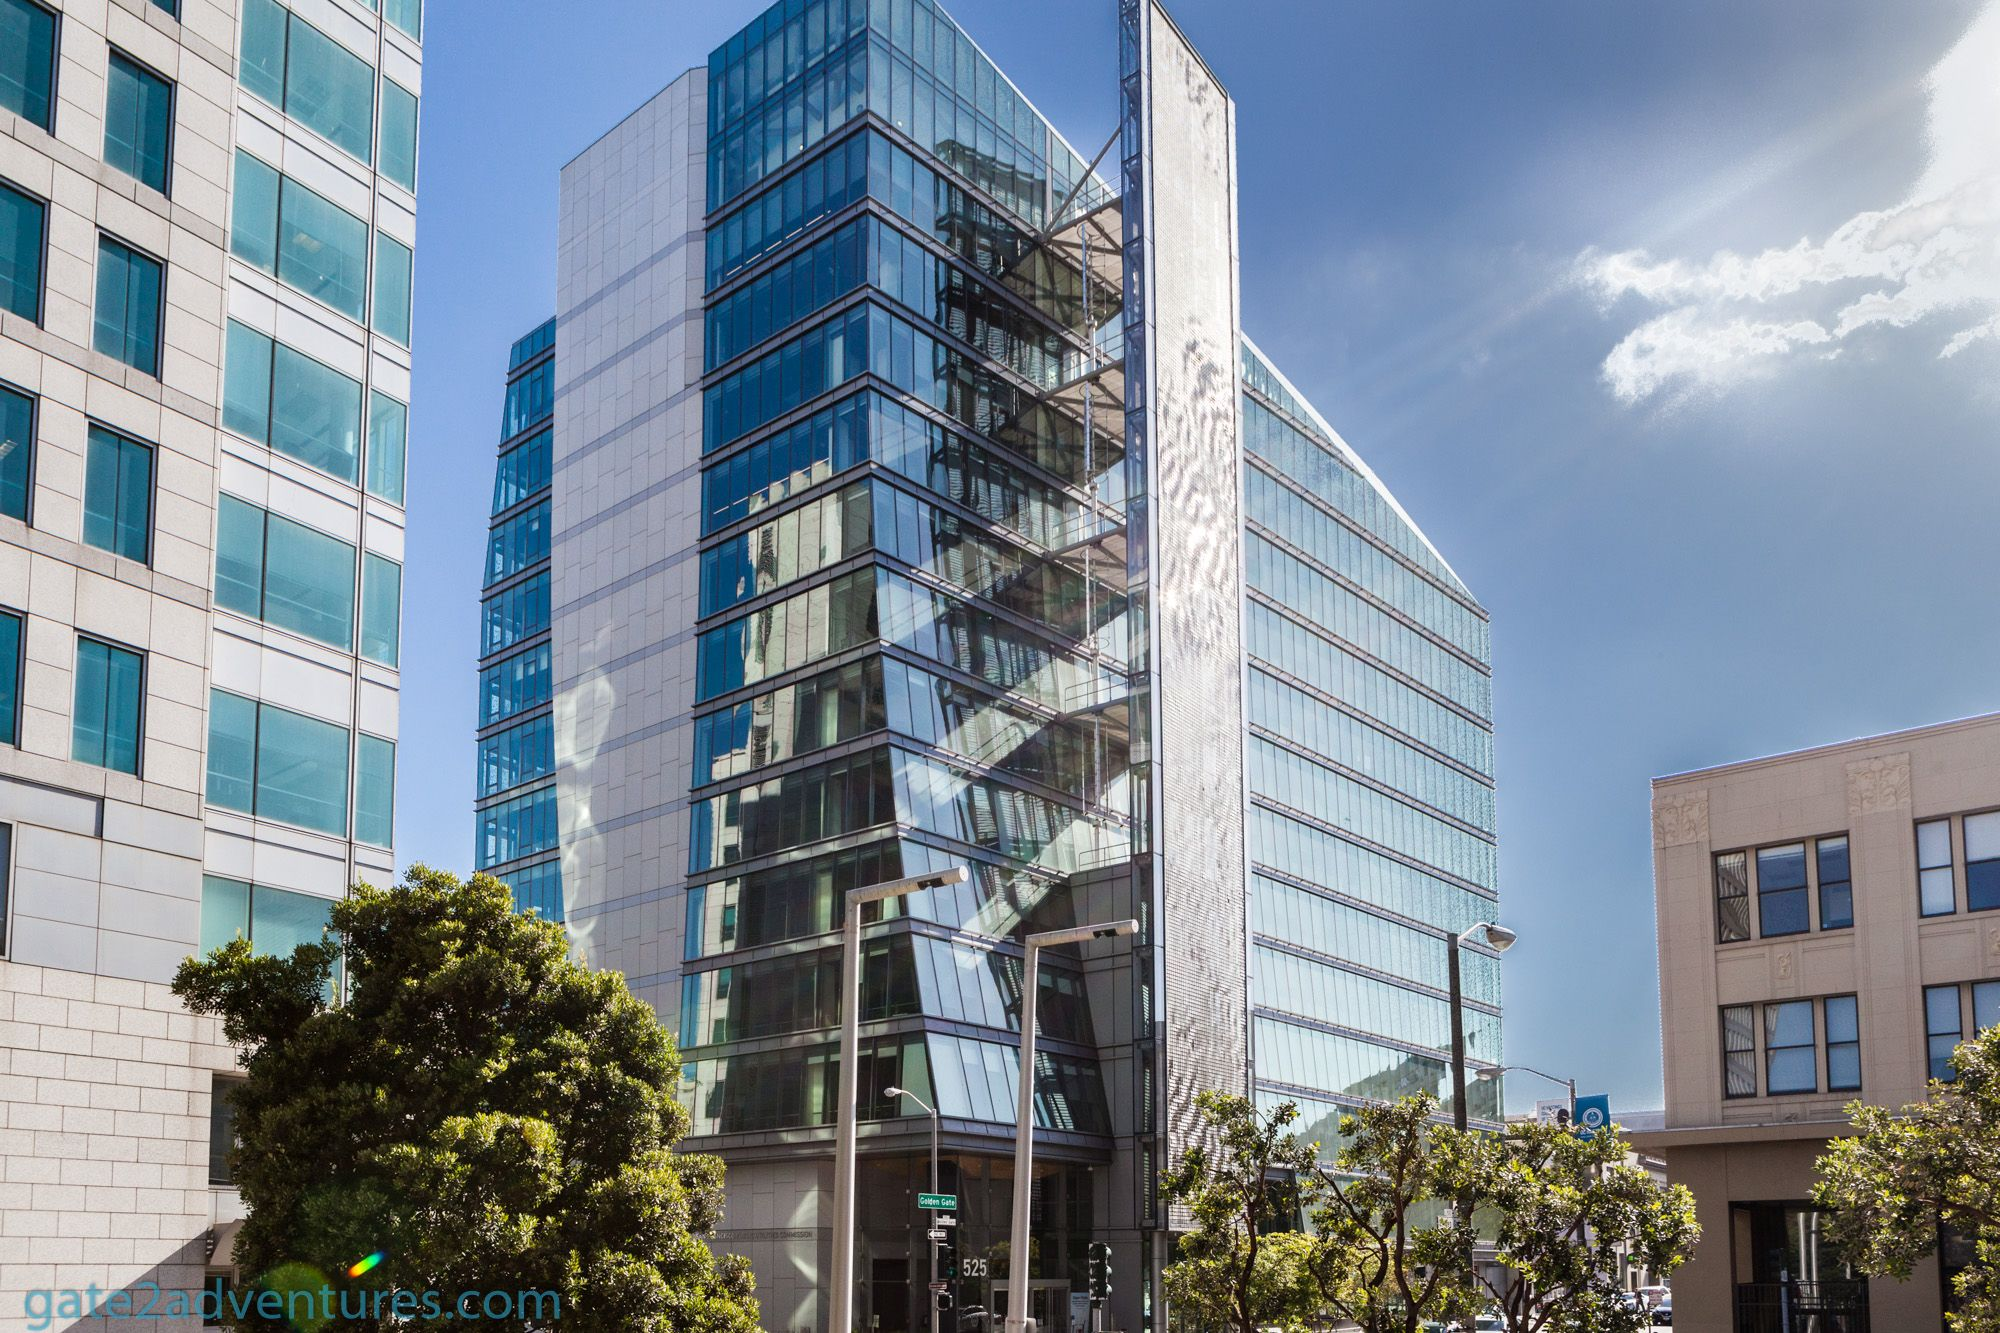 Take a Free Tour of the San Francisco Public Utilities Commission HQ